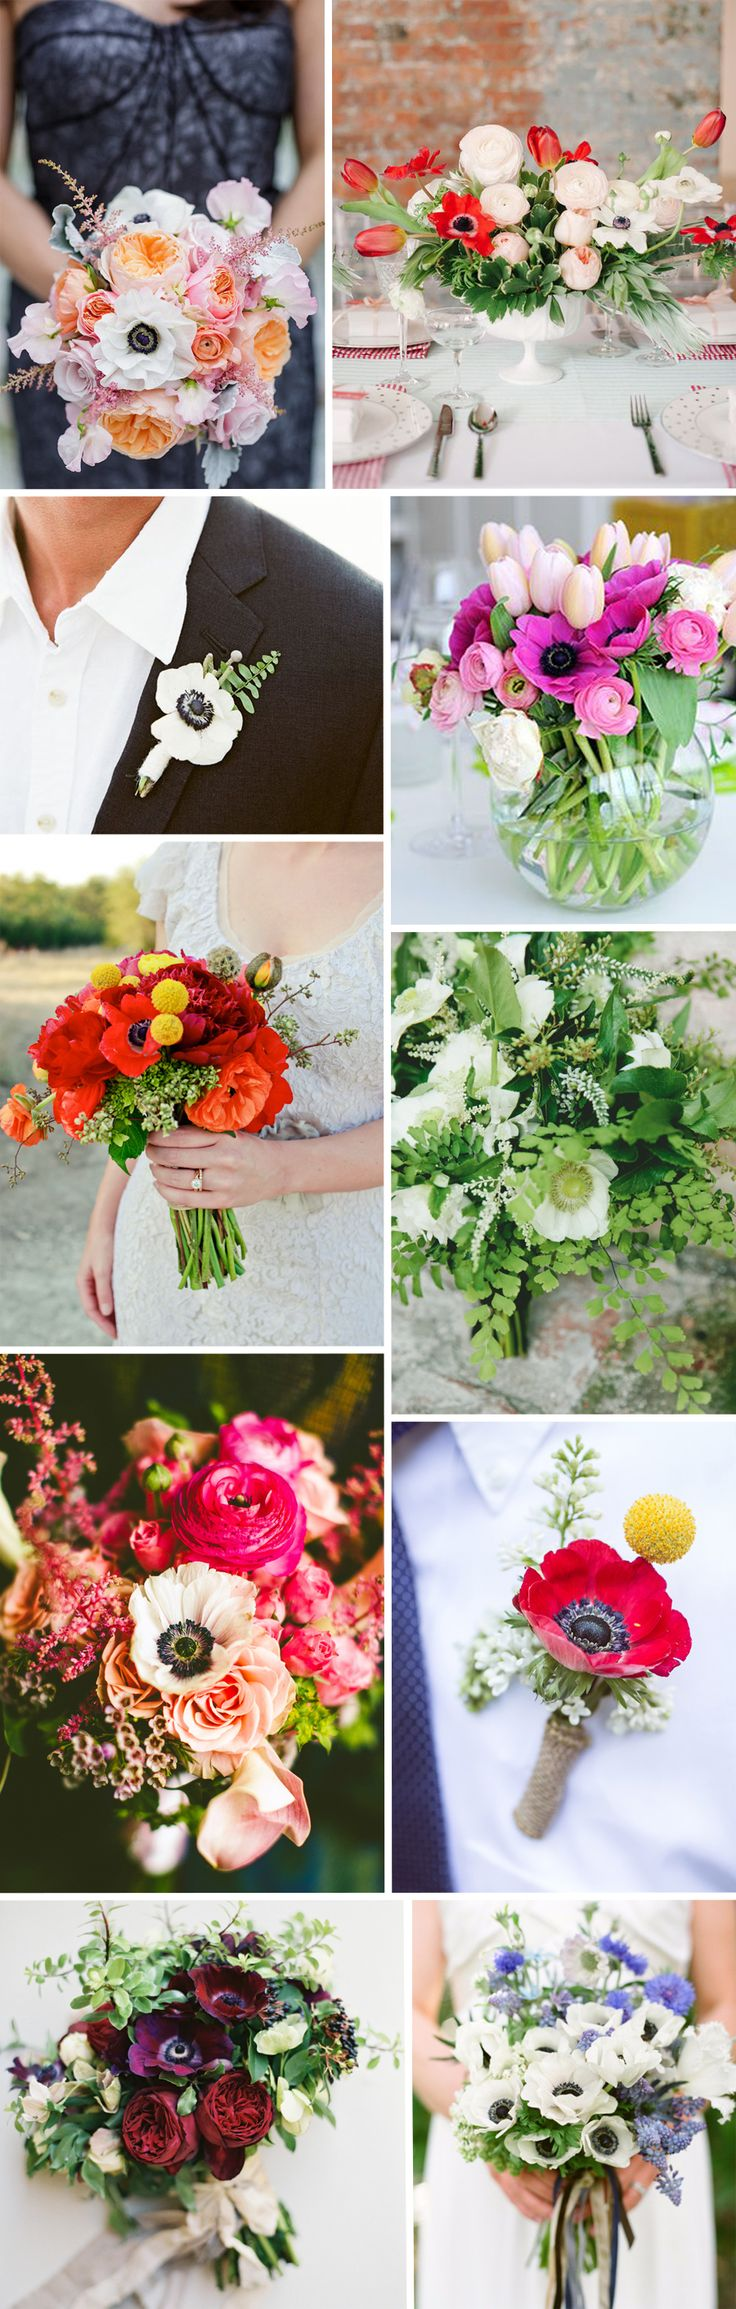 19 Best Flowers Images On Pinterest Bridal Bouquets Floral